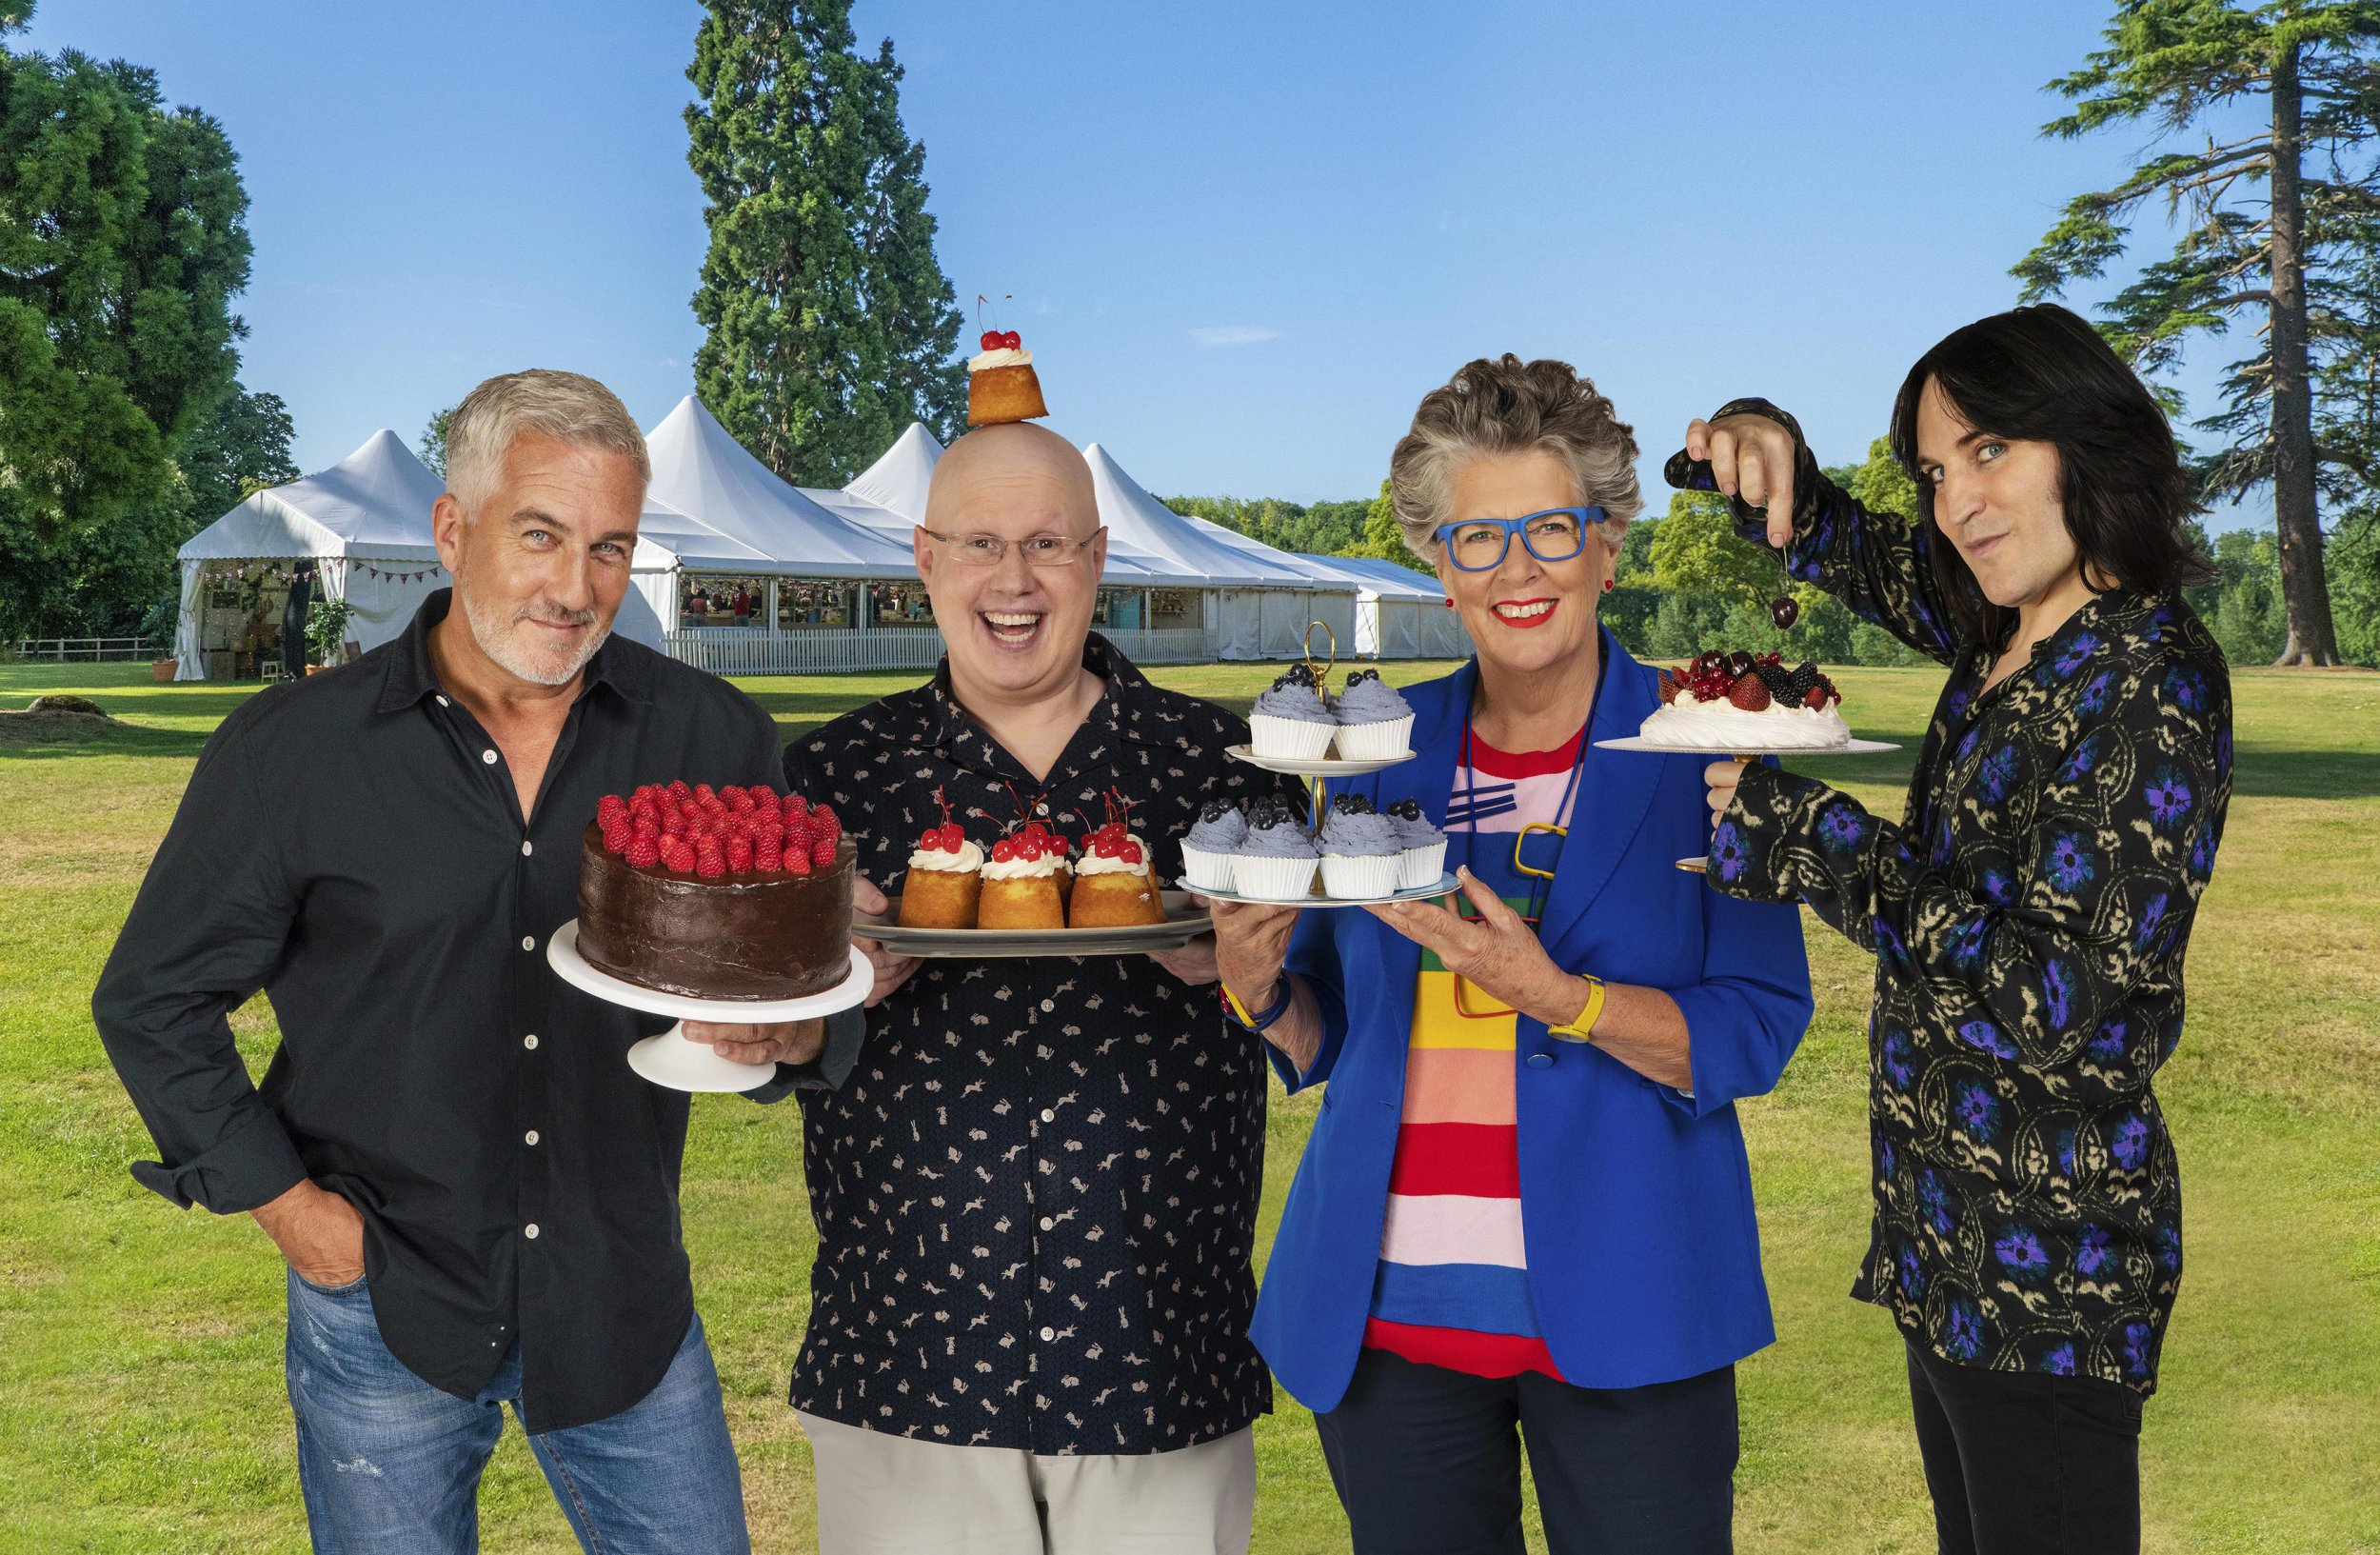 The Curious New Filming Rules for Bake Off Judges and Contestants